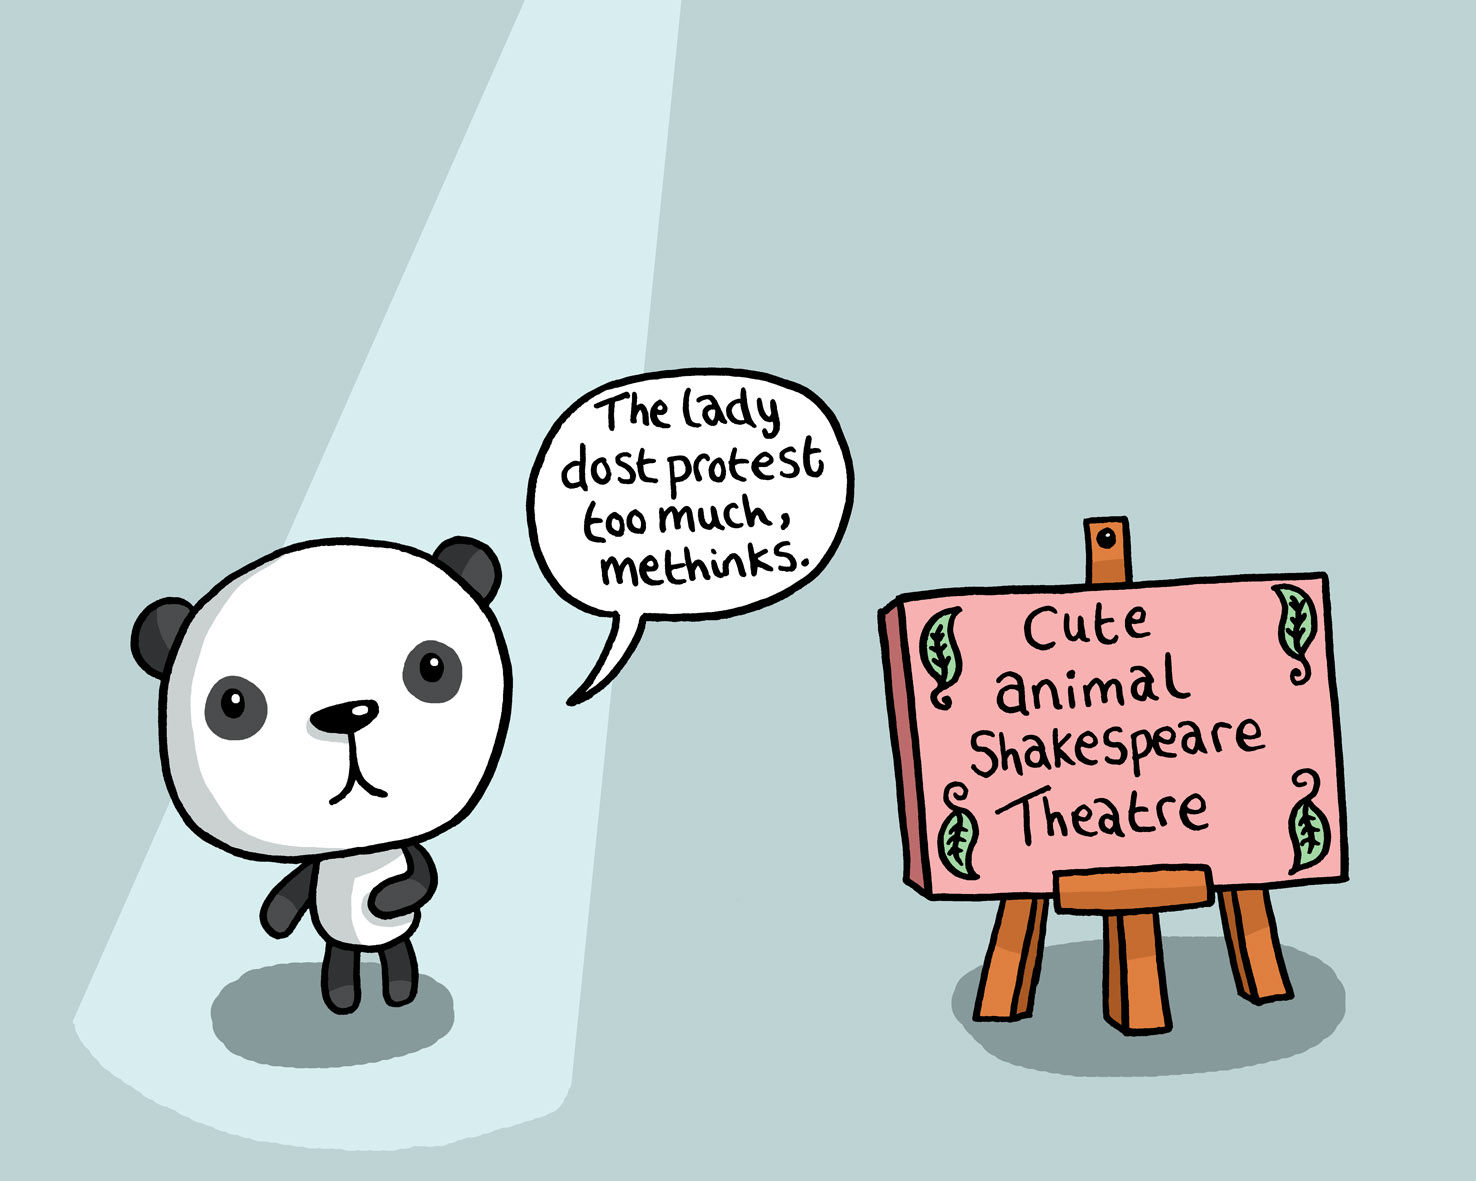 My shakespeare year day 152 cute little cartoon animals make cute animal shakespeare theatre voltagebd Gallery